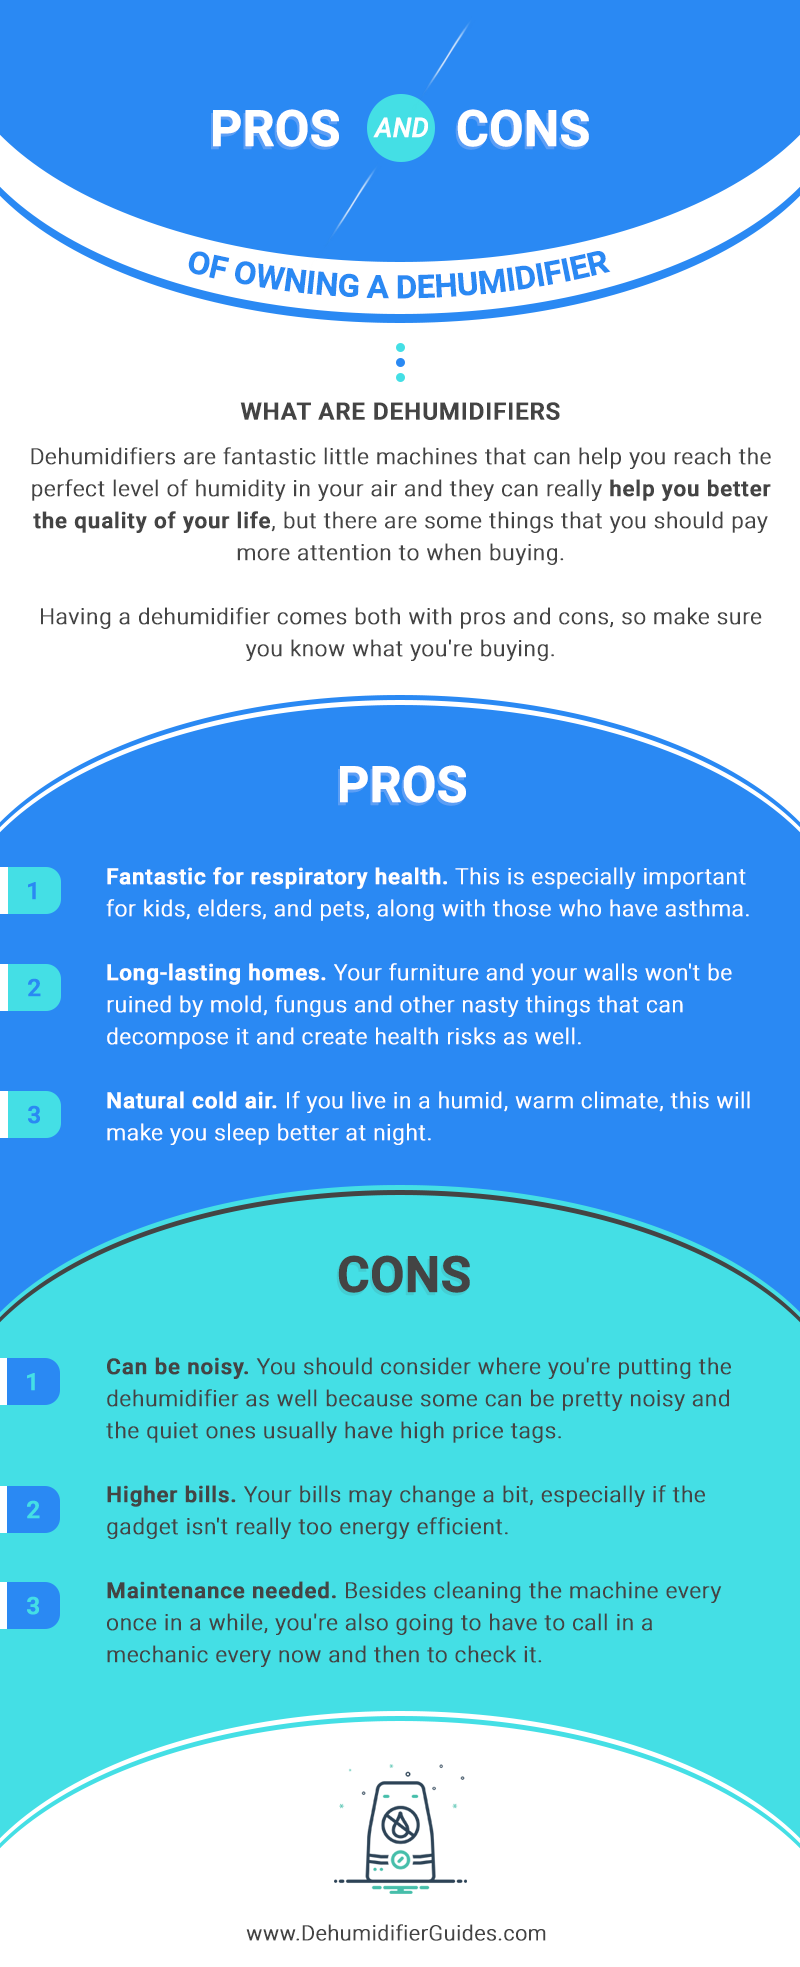 The Pros and The Cons of Owning a Dehumidifier #infographic